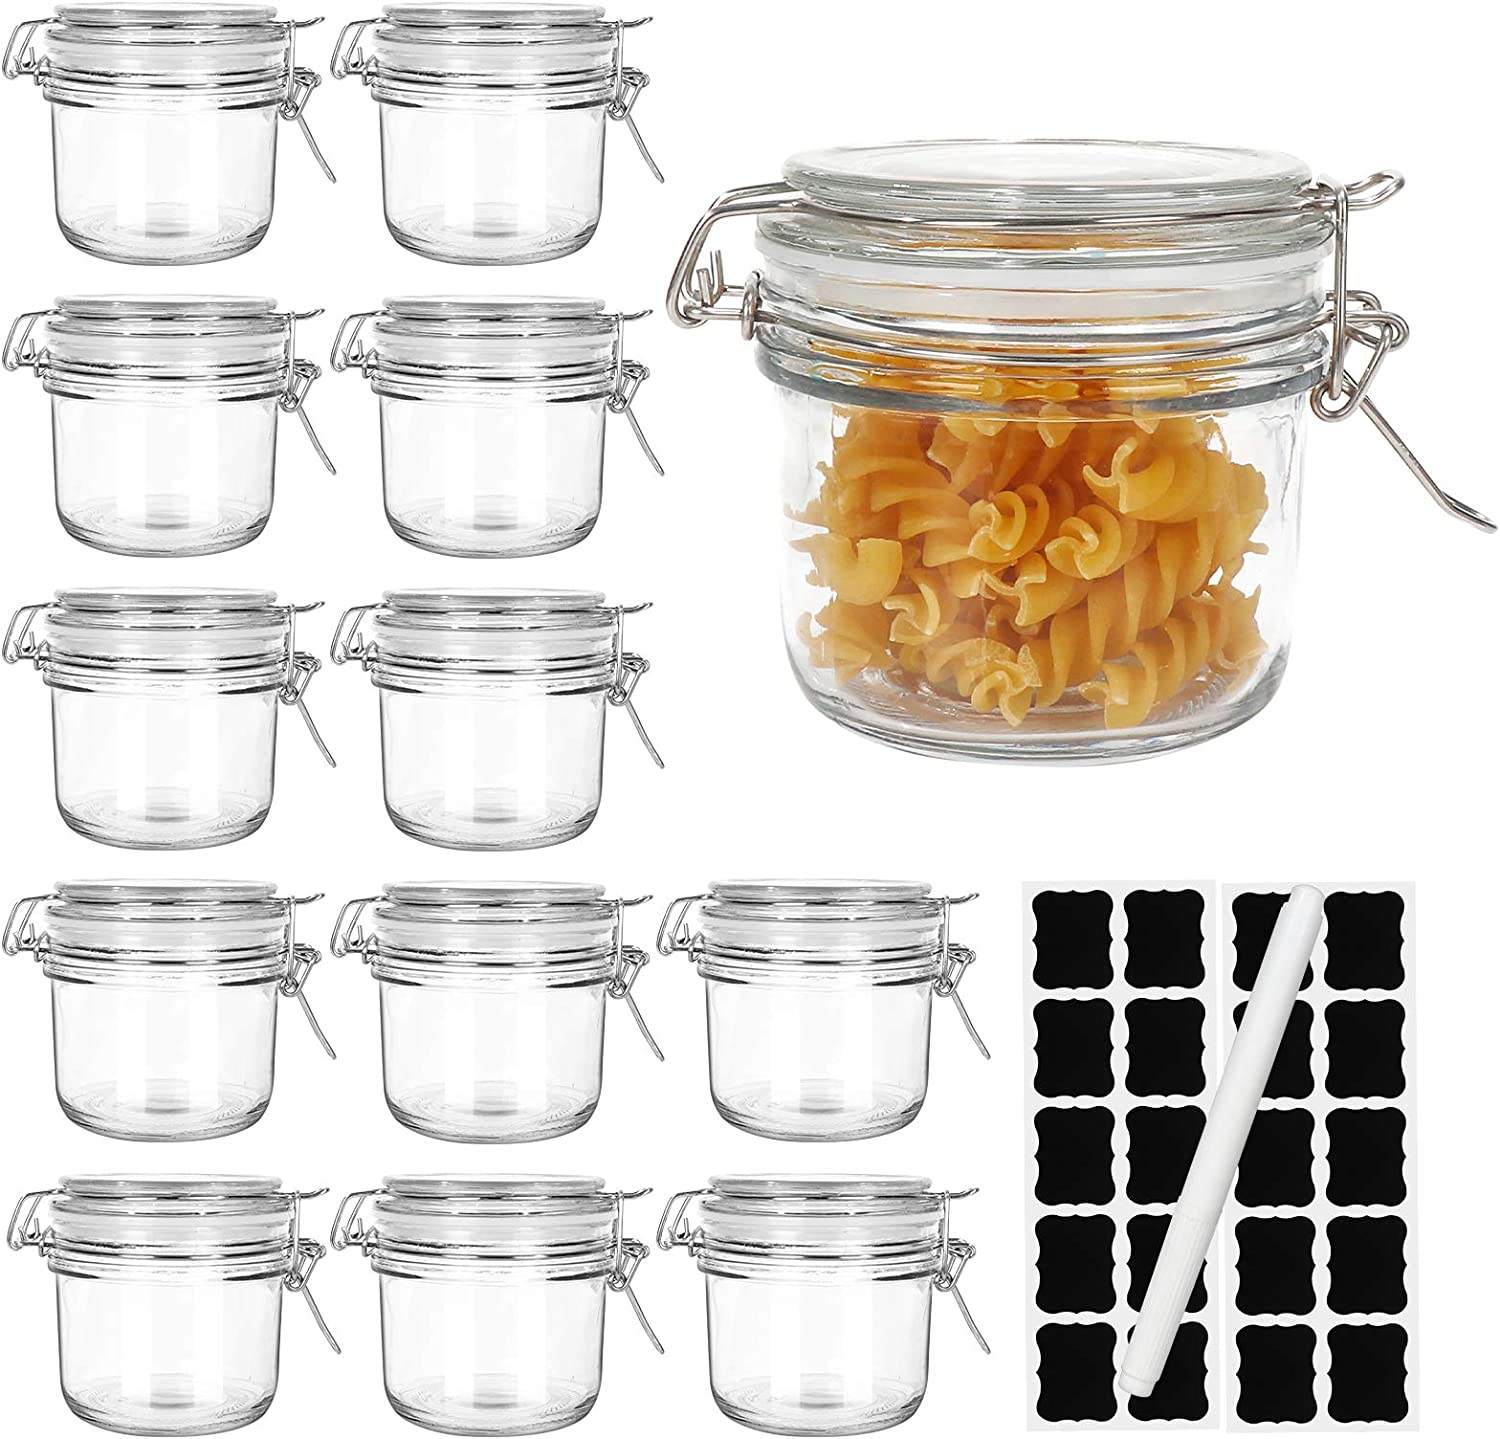 5oz Airtight Jars,Spice Jars, Leak Proof Storage Container Jar,Glass Food Jars with Labels & Chalkboard Pen and Silicone Gaskets, Set of 12